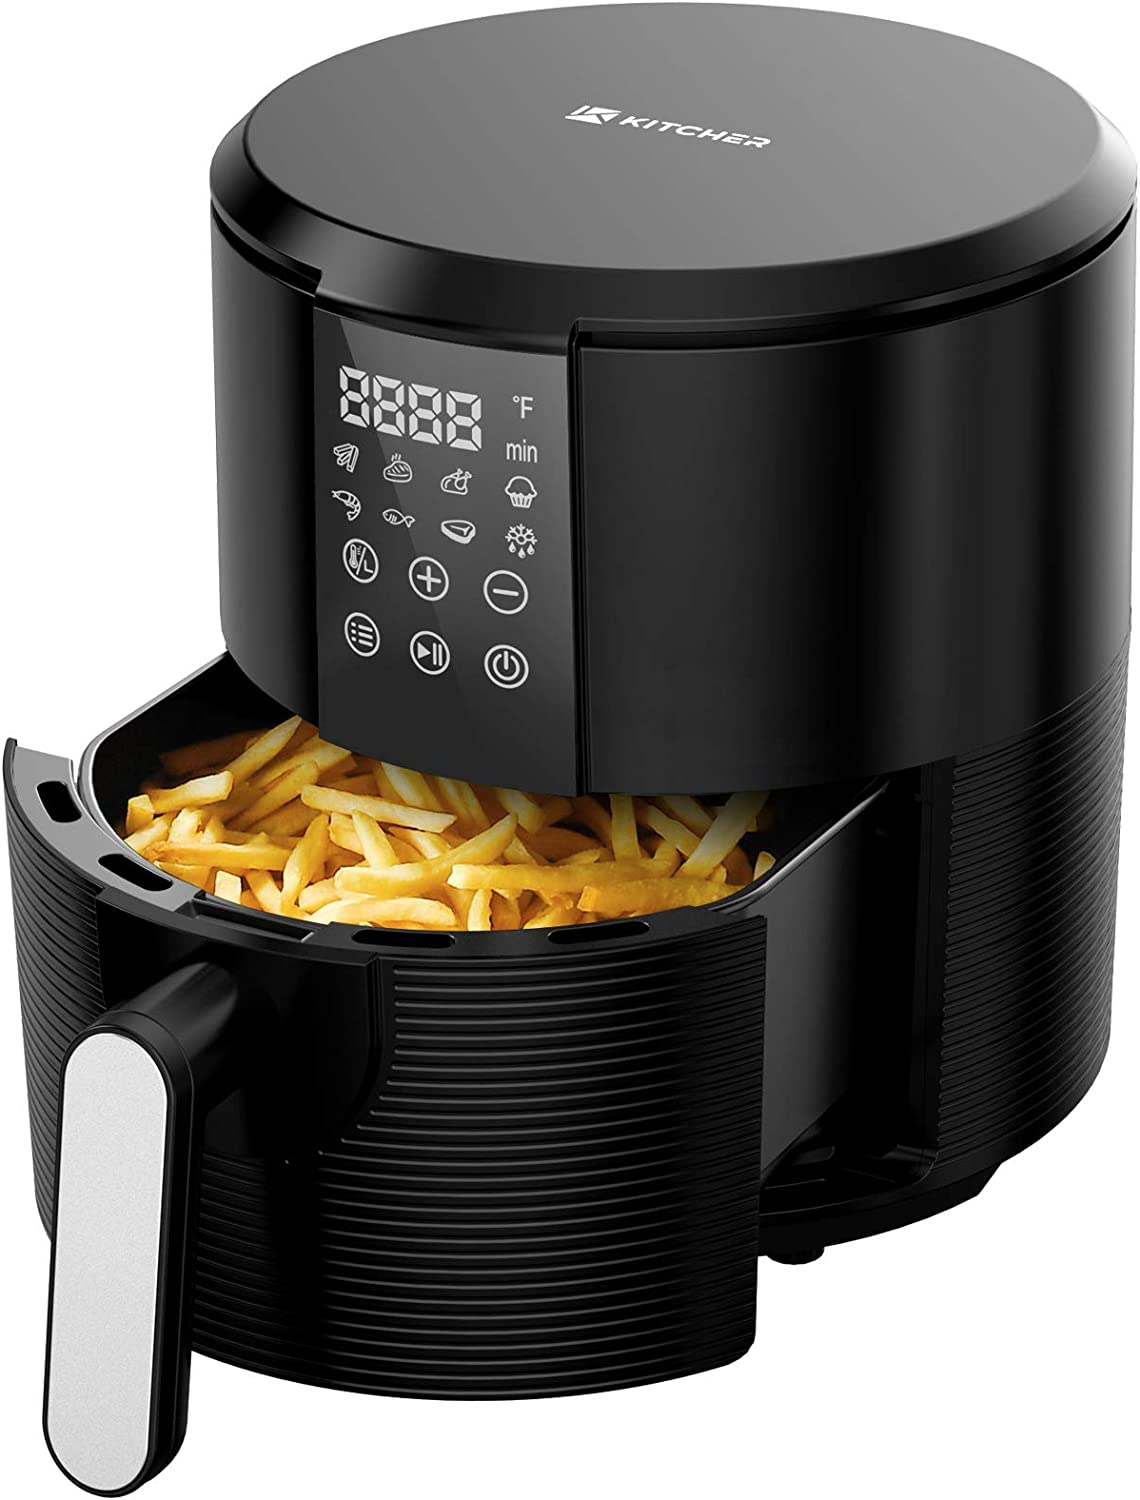 Kitcher 3.5Qt Air Fryer LED Touch Digital Screen Hot Air Fryers Oven Oilless Cooker with Temperature Control 60 Minutes Timer Non-stick Fry Basket 50 Recipes Auto Shut Off Feature